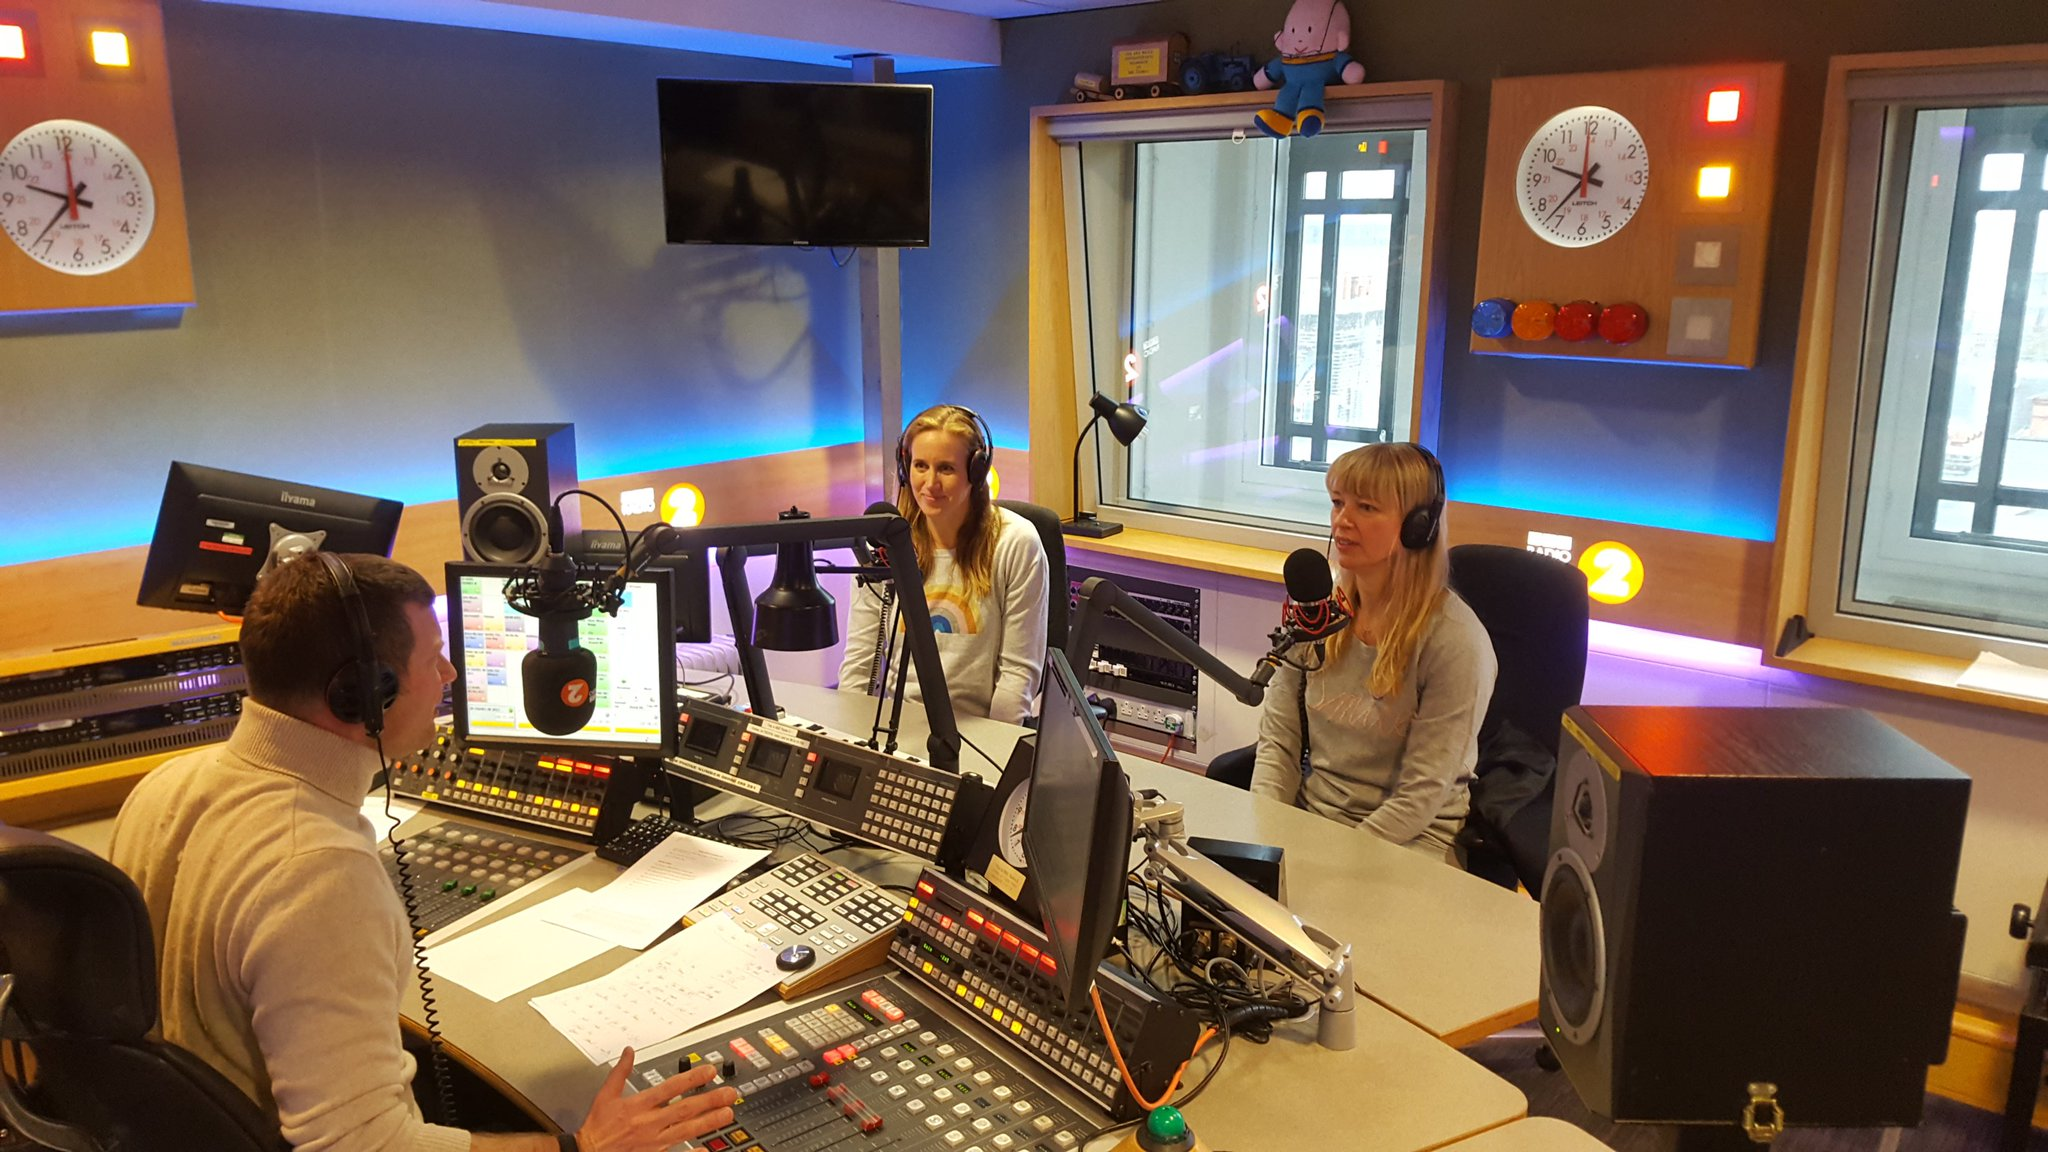 HQ: @Helenglovergb and @sarajcox on @BBCRadio2 right now talking Sports Relief Rowing challenge https://t.co/mRffi8zE3R